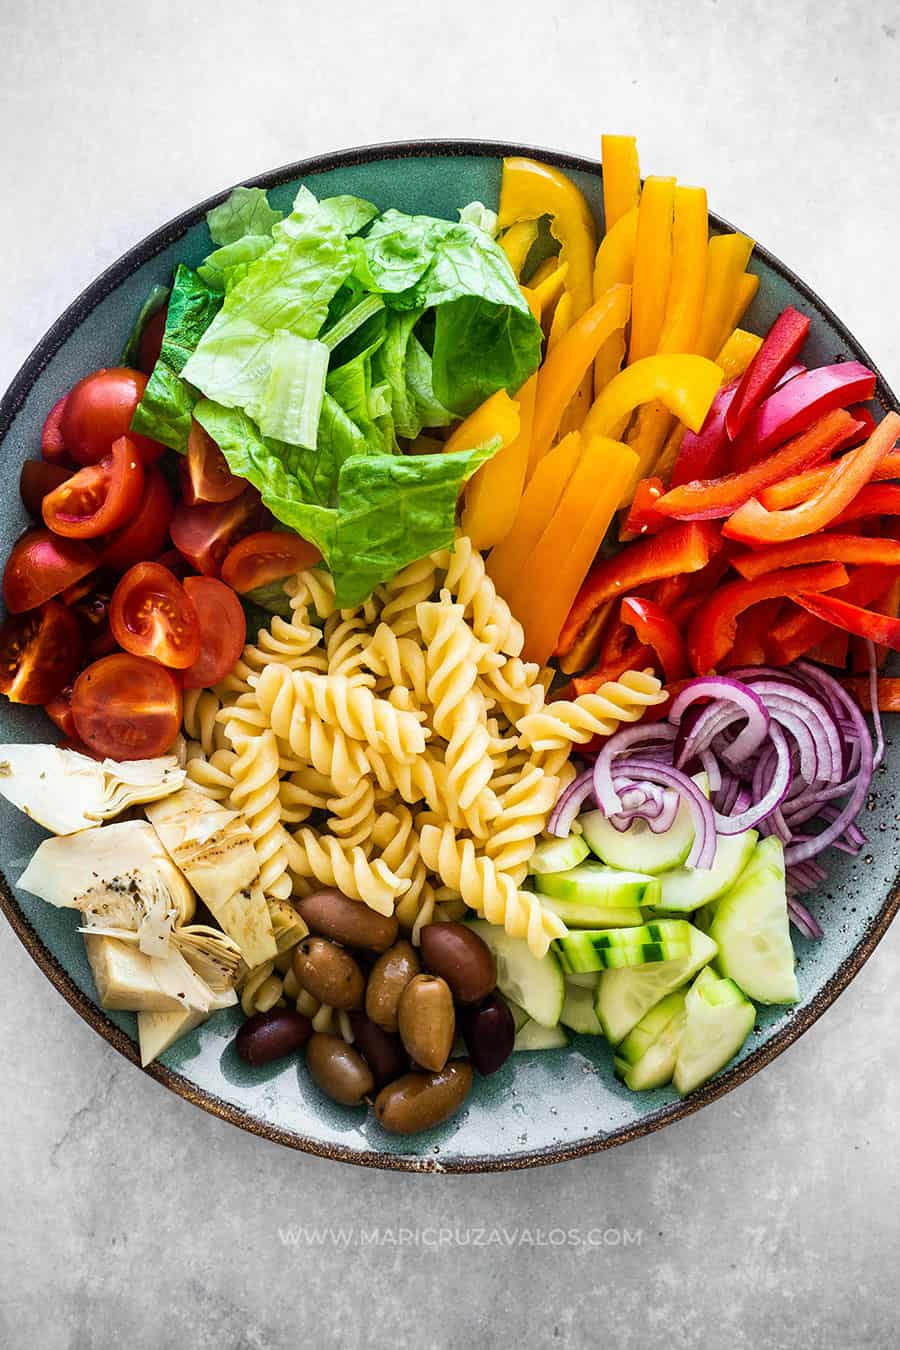 Pasta and vegetables arranged on a plate.